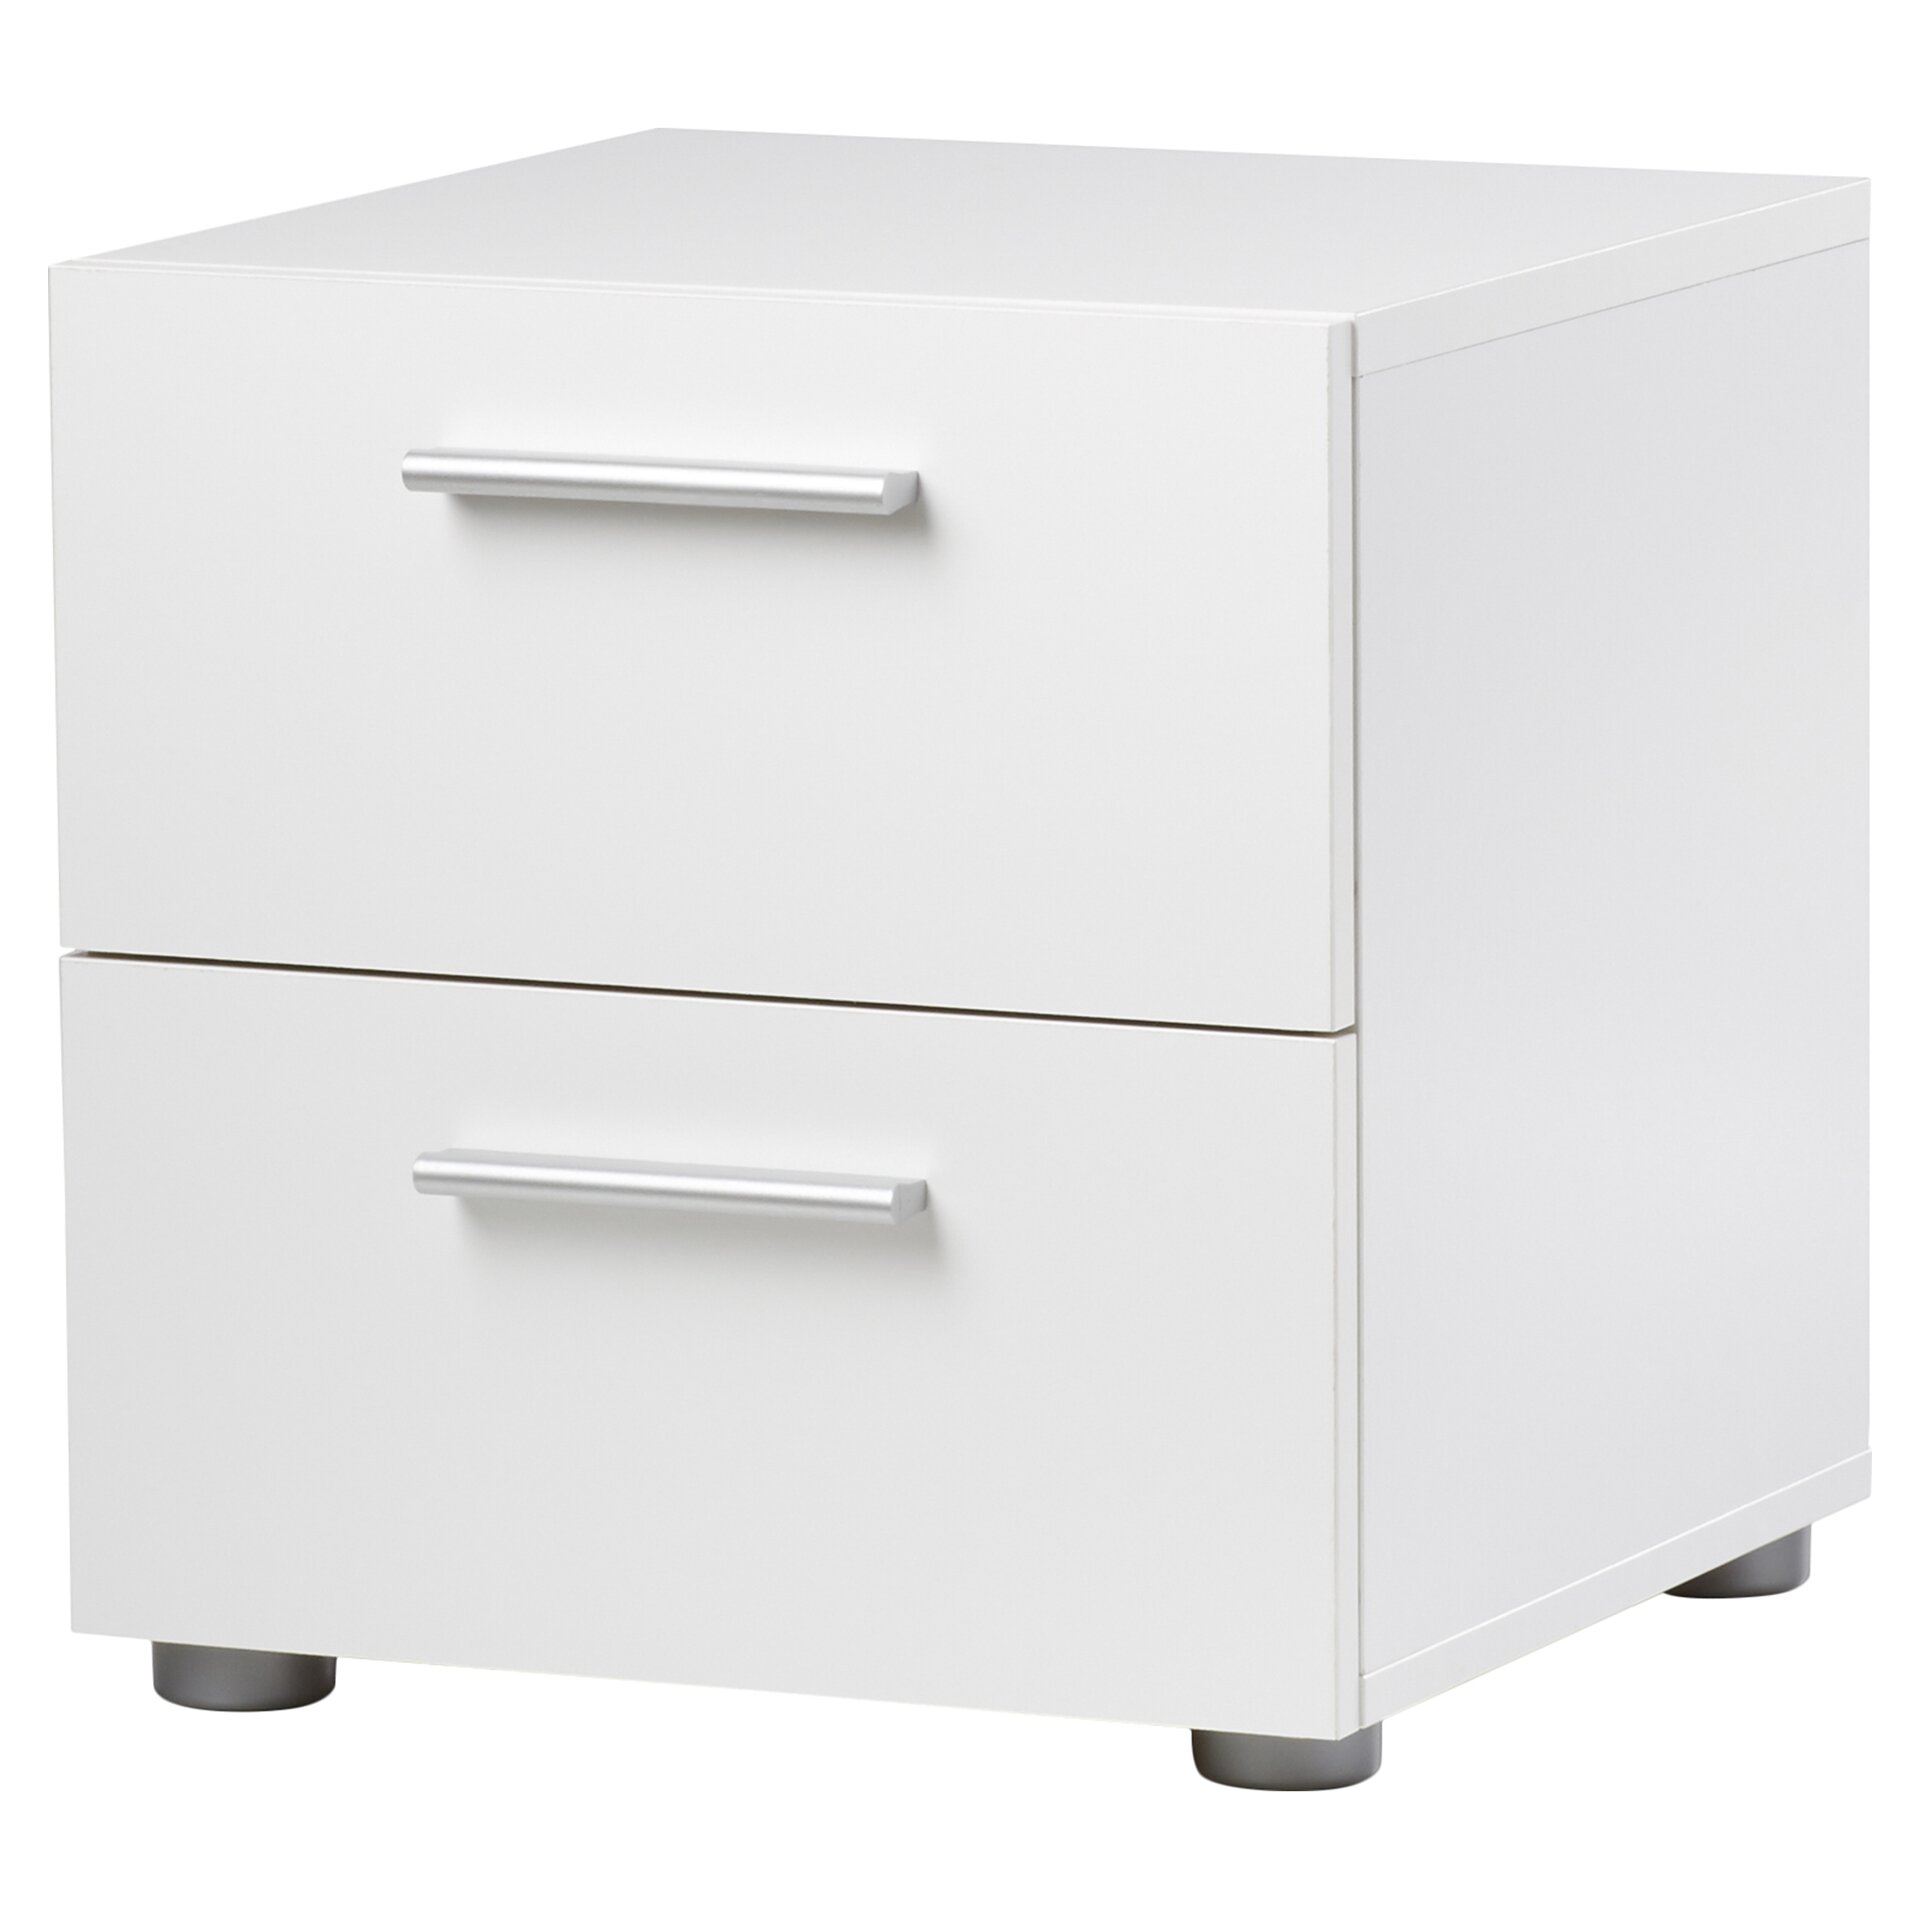 Brayden studio lopiccolo 2 drawer nightstand reviews wayfair - Pictures of nightstands ...